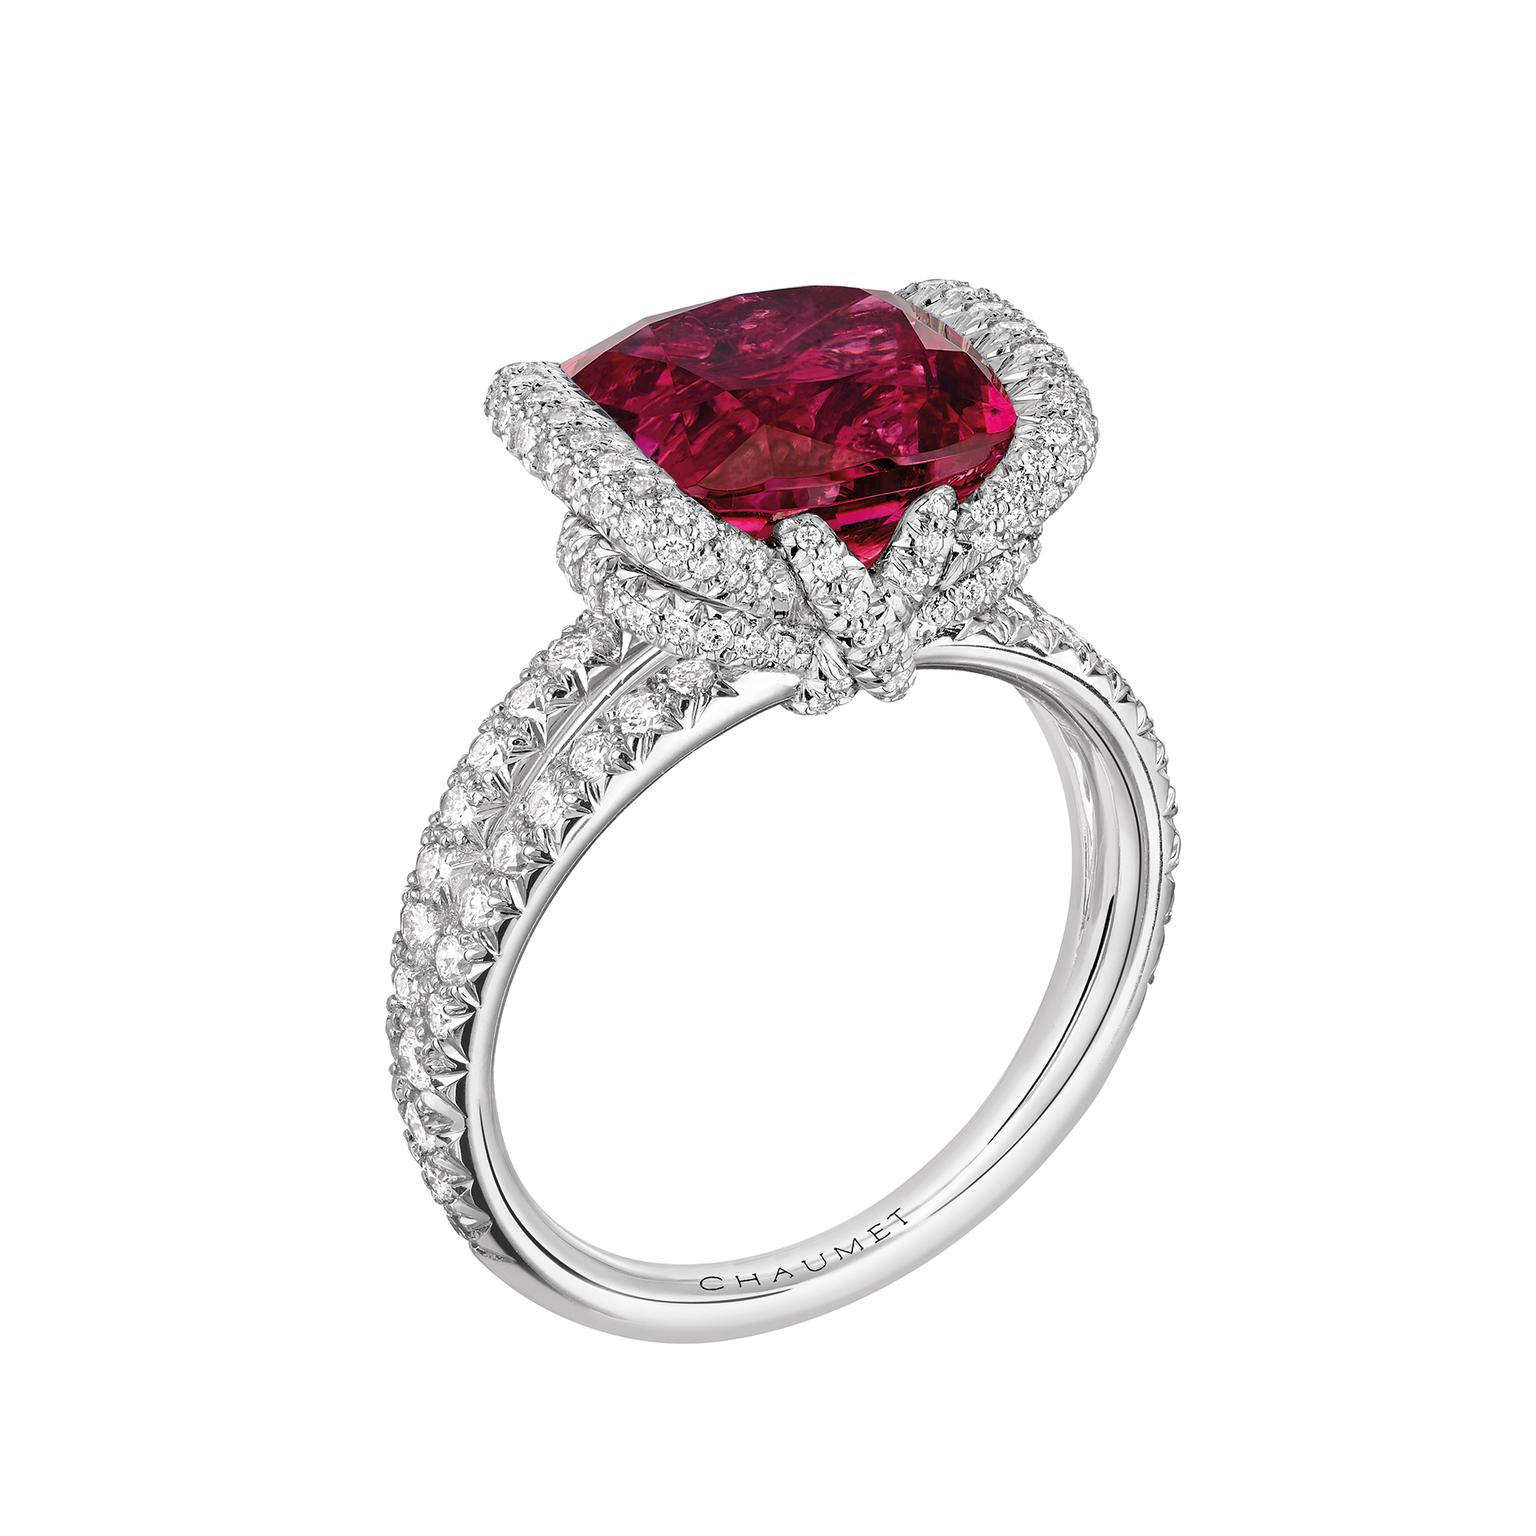 Chaumet Liens d'Amour red tourmaline ring